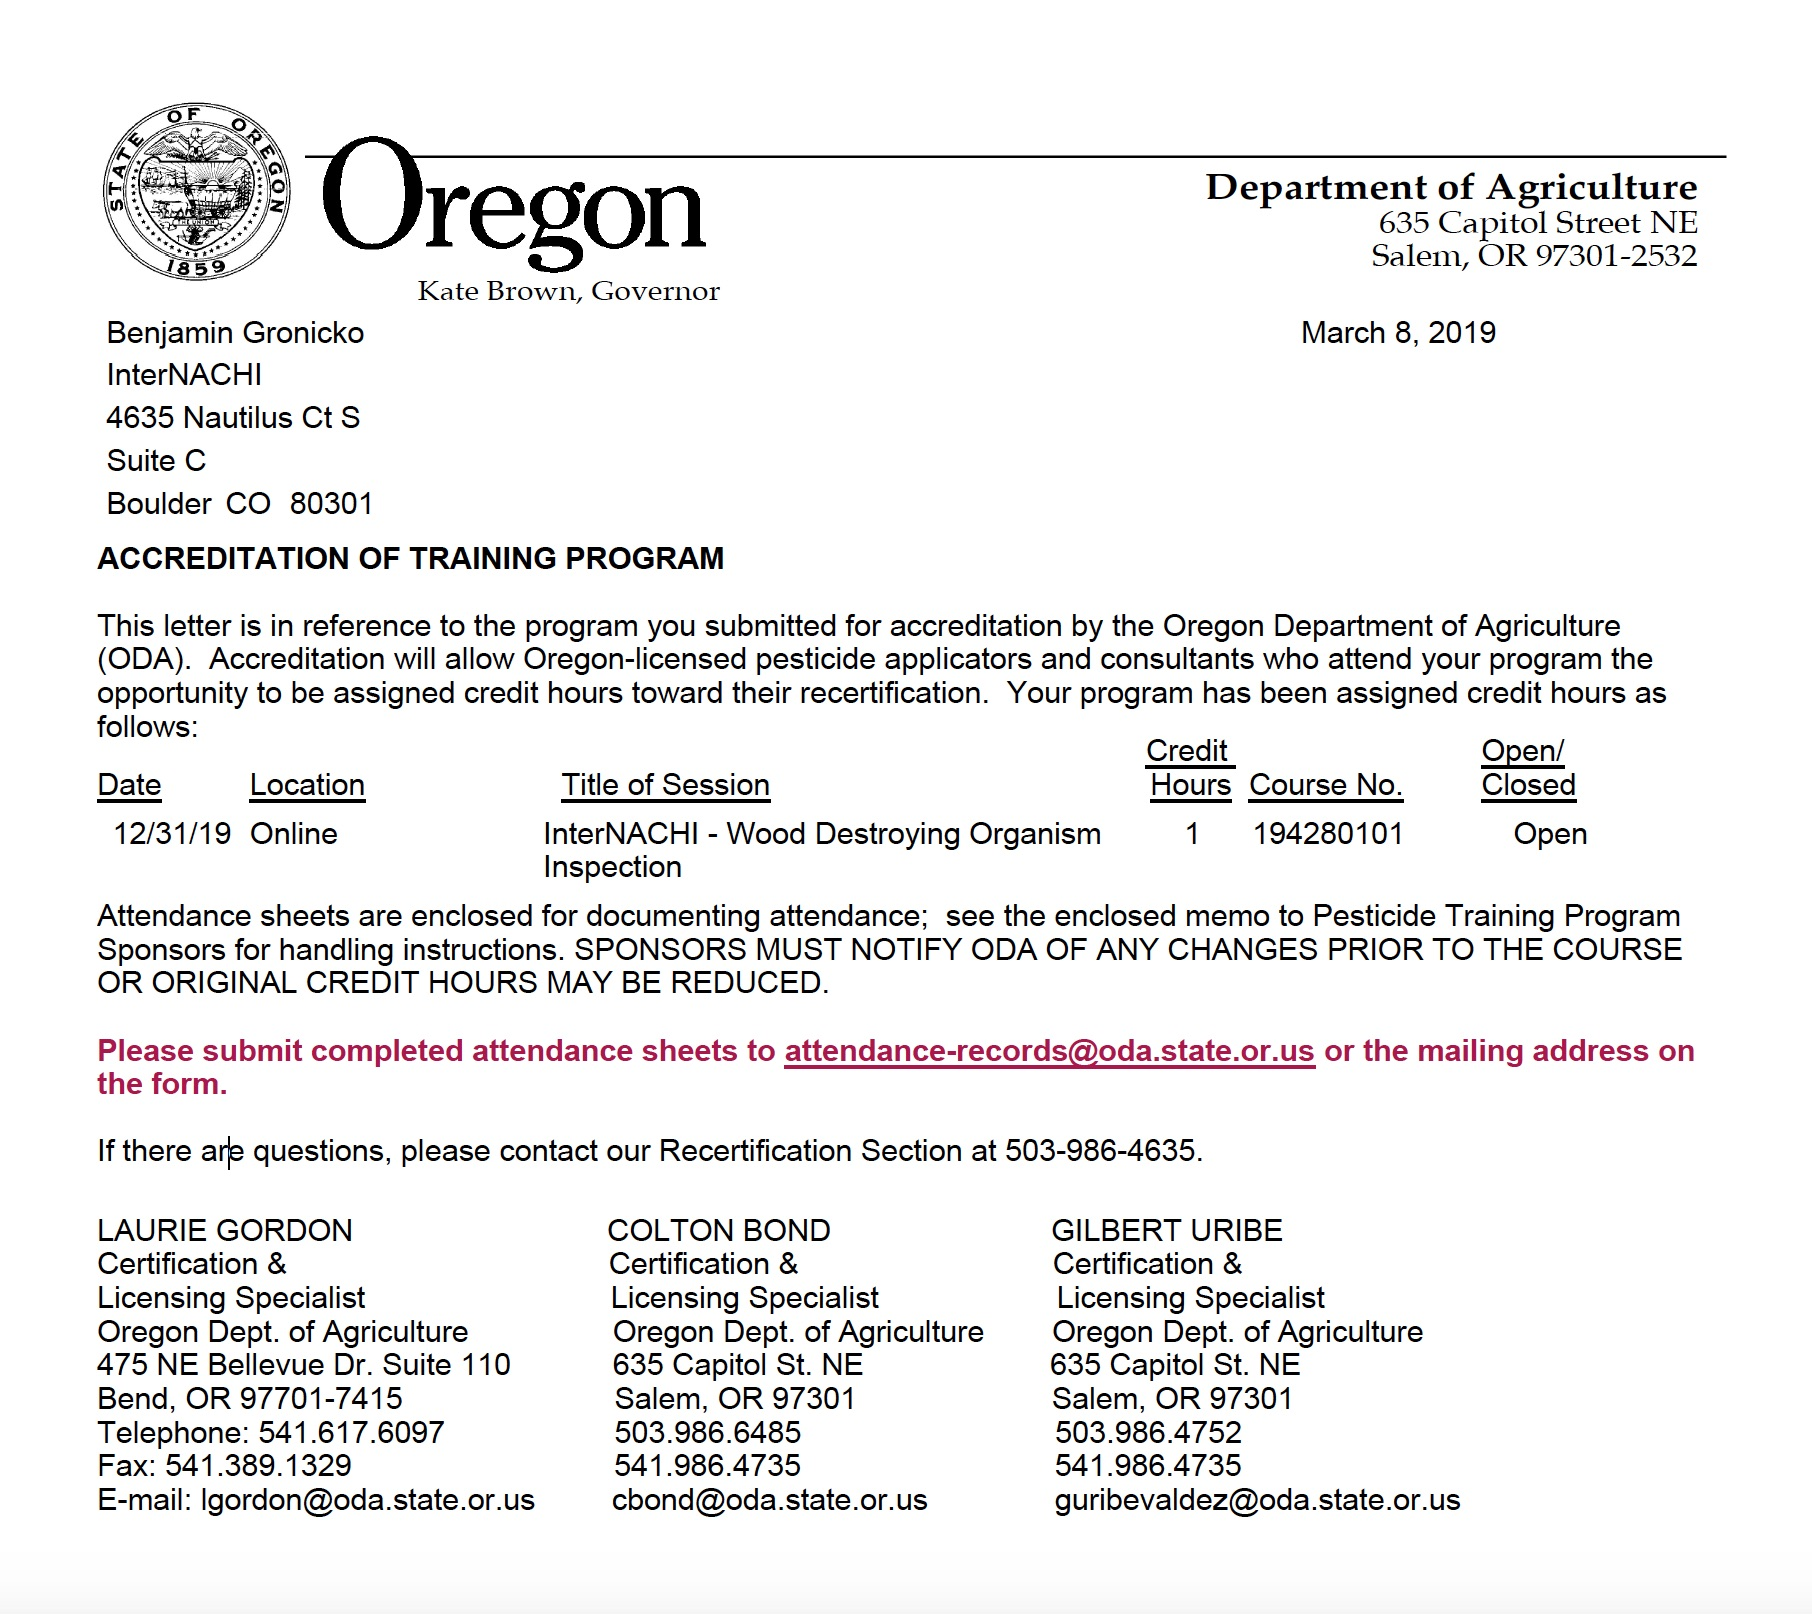 Oregon Department of Agriculture Approves InterNACHI's Free, Online